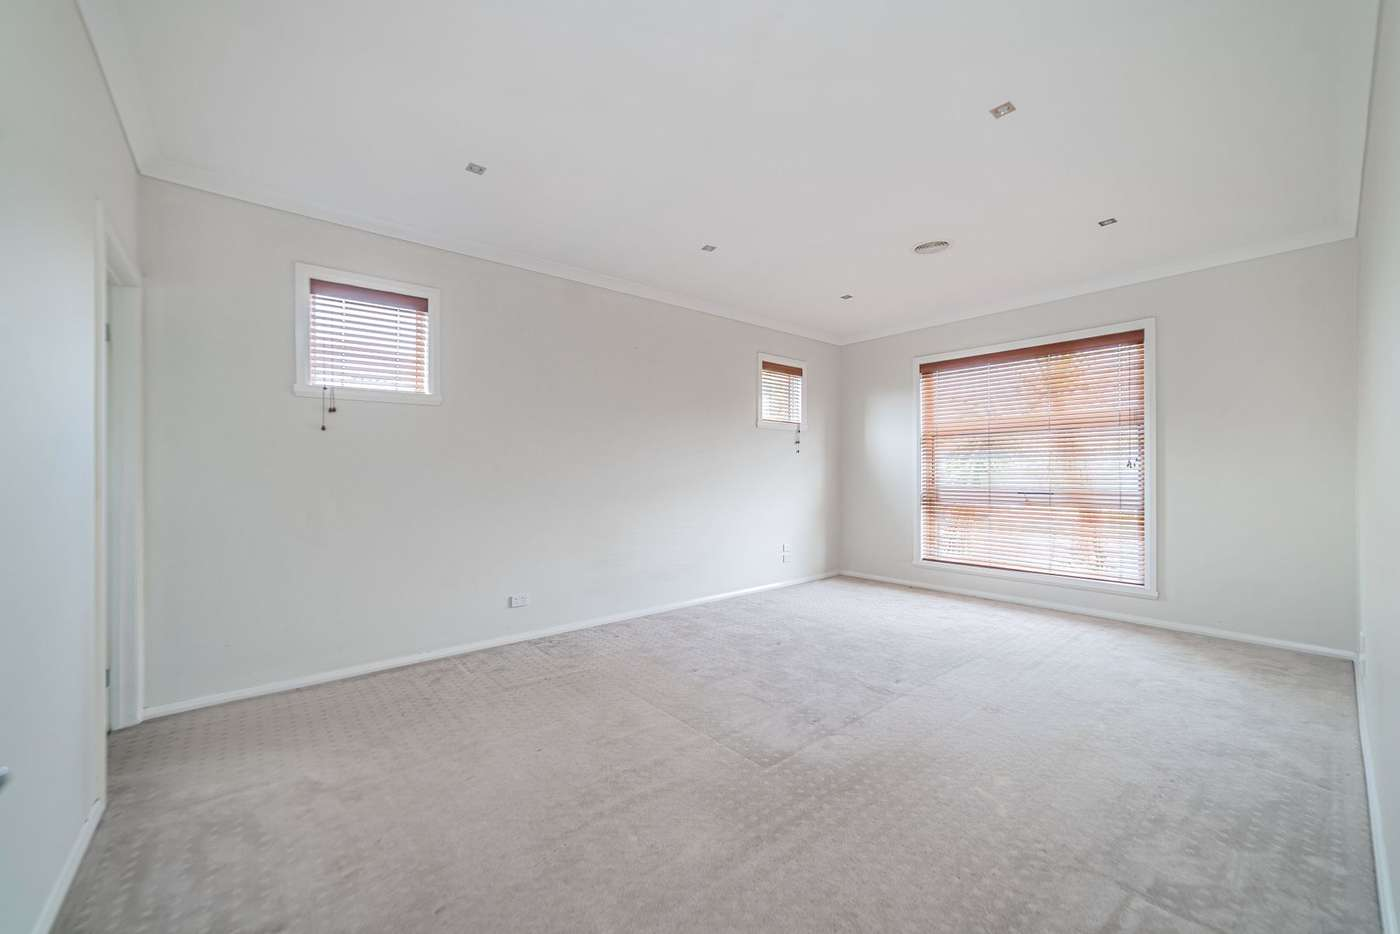 Seventh view of Homely house listing, 51 Coronet Avenue, Roxburgh Park VIC 3064